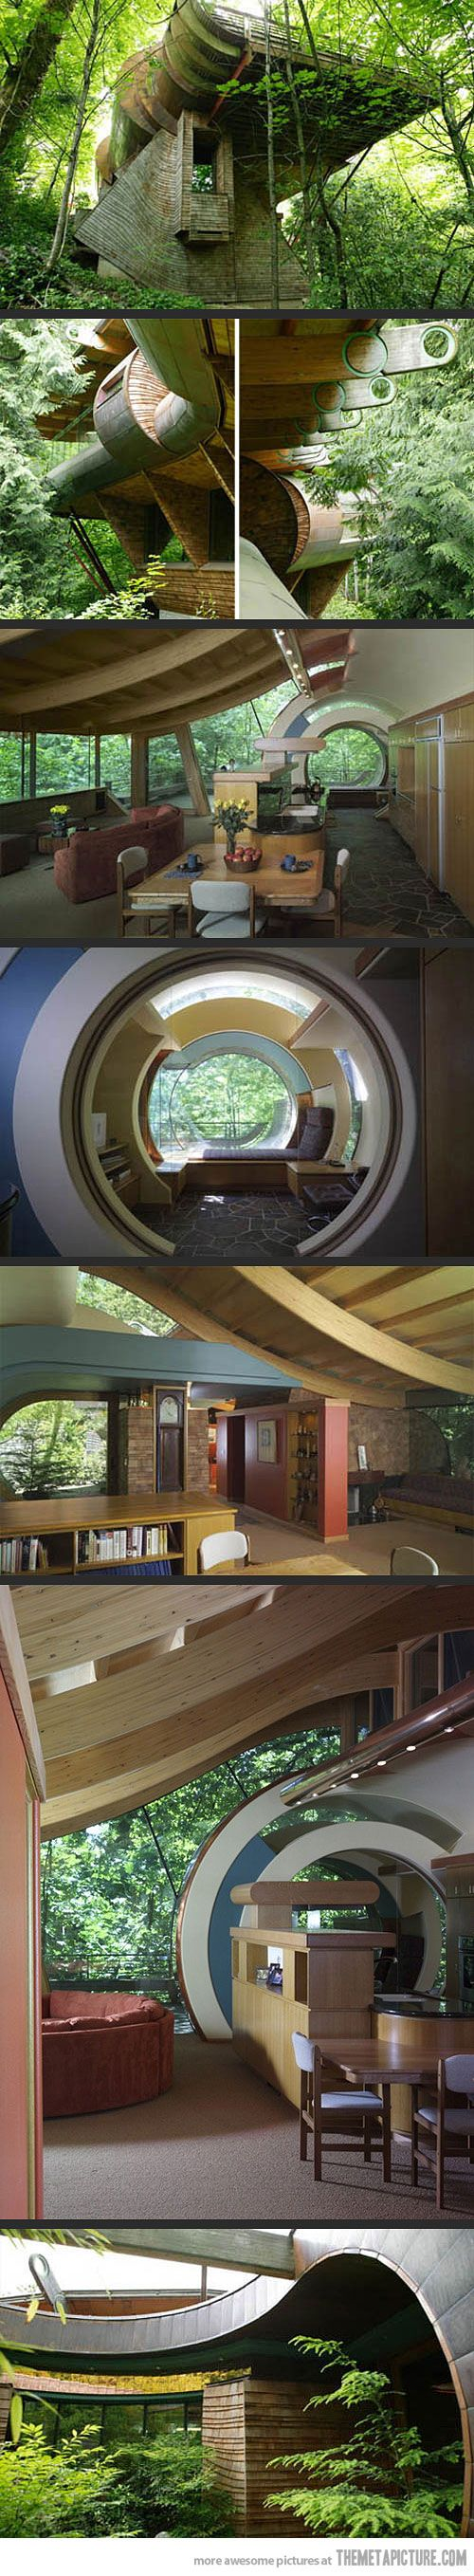 Organic Architect Robert Oshatz's house ( Portland, Oregon ). #Cool #houses #Weird #Houses #interesting #houses #cool architecture #house #weird #architecture #house #interesting #architecture #house #dream #home